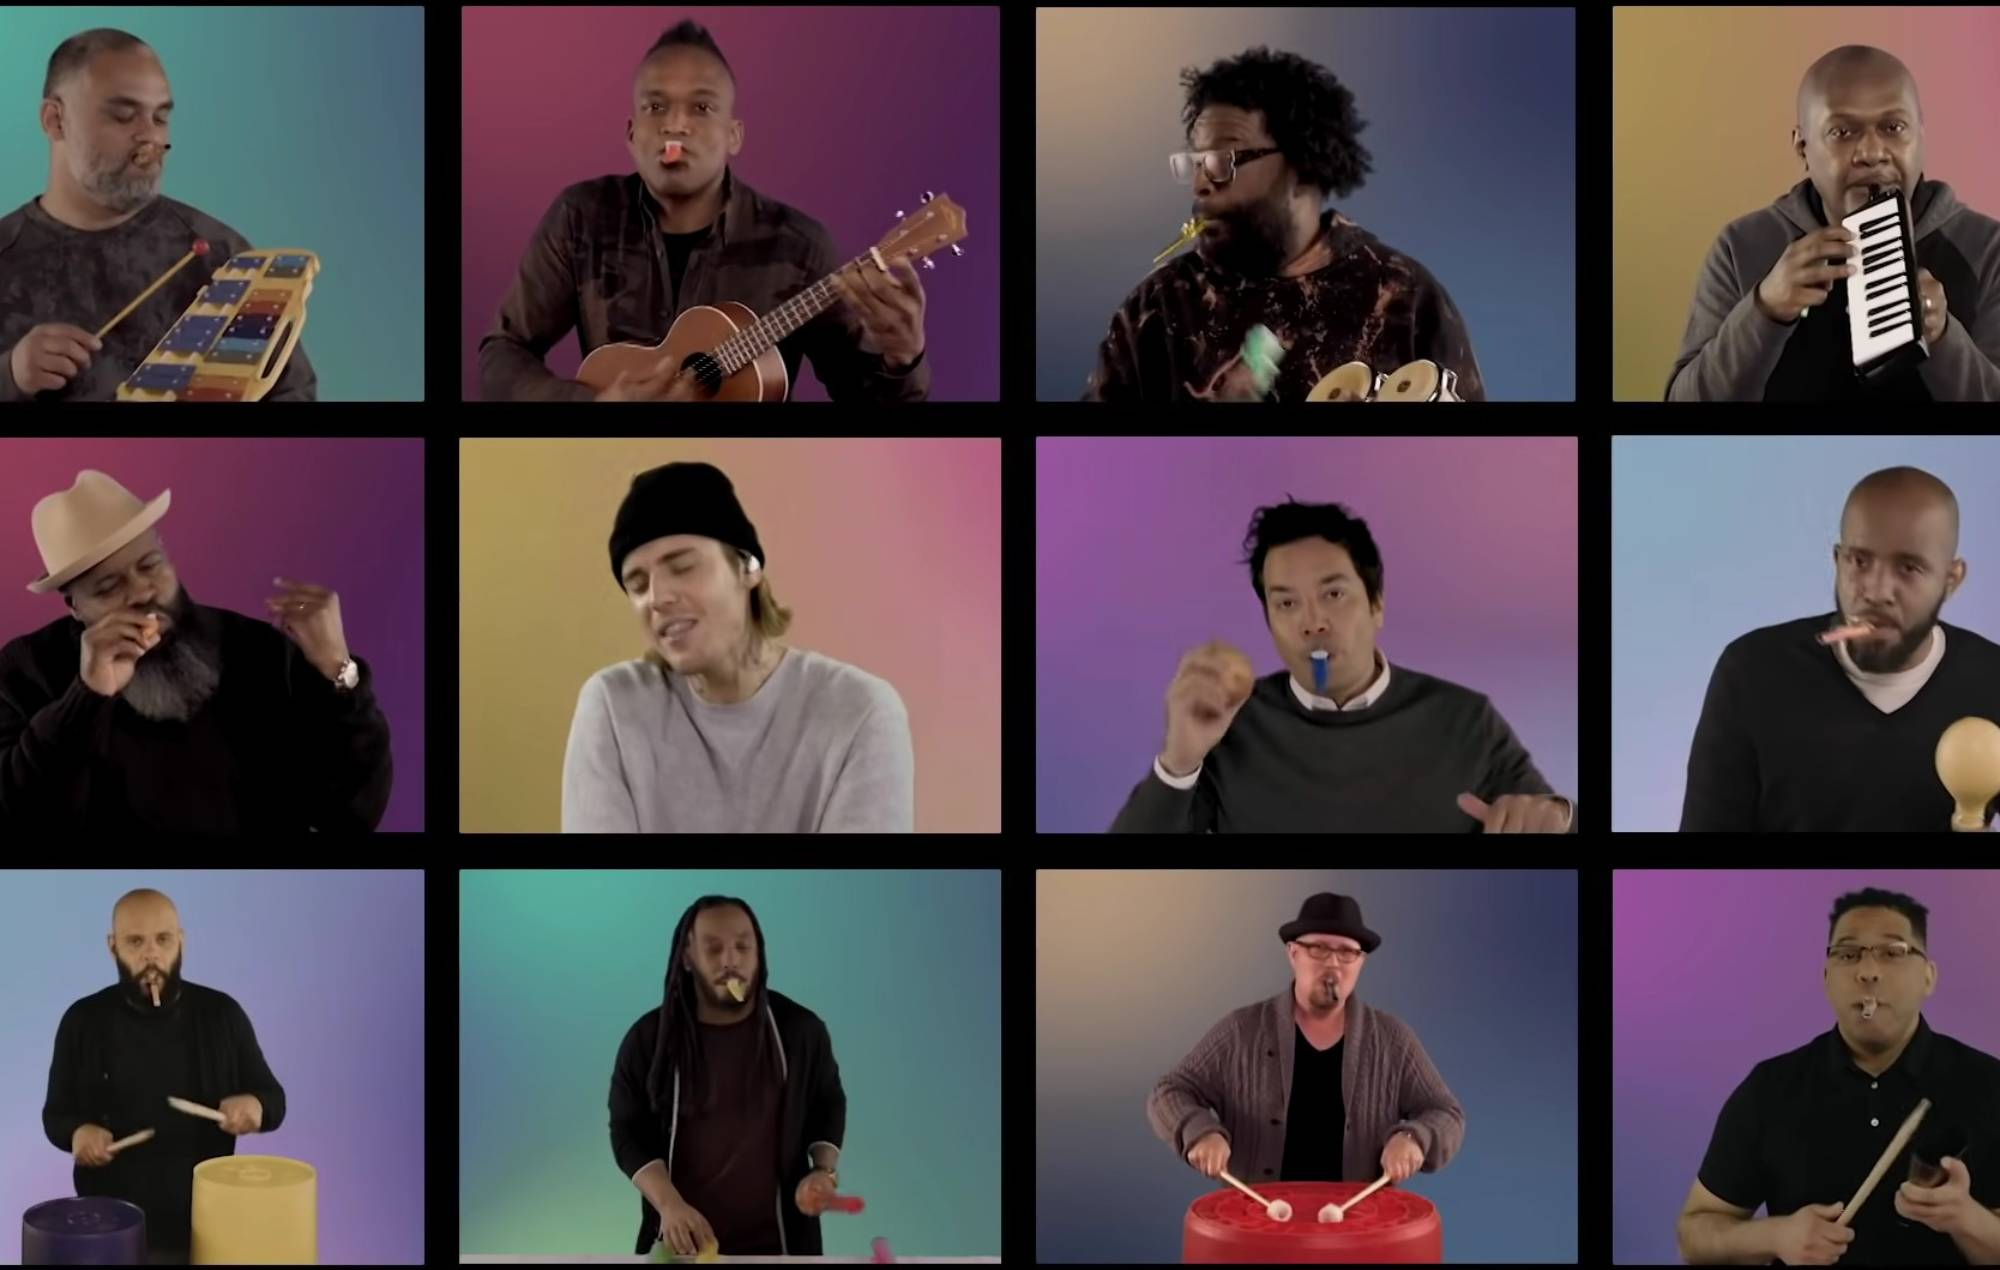 Justin Bieber, The Roots and Jimmy Fallon